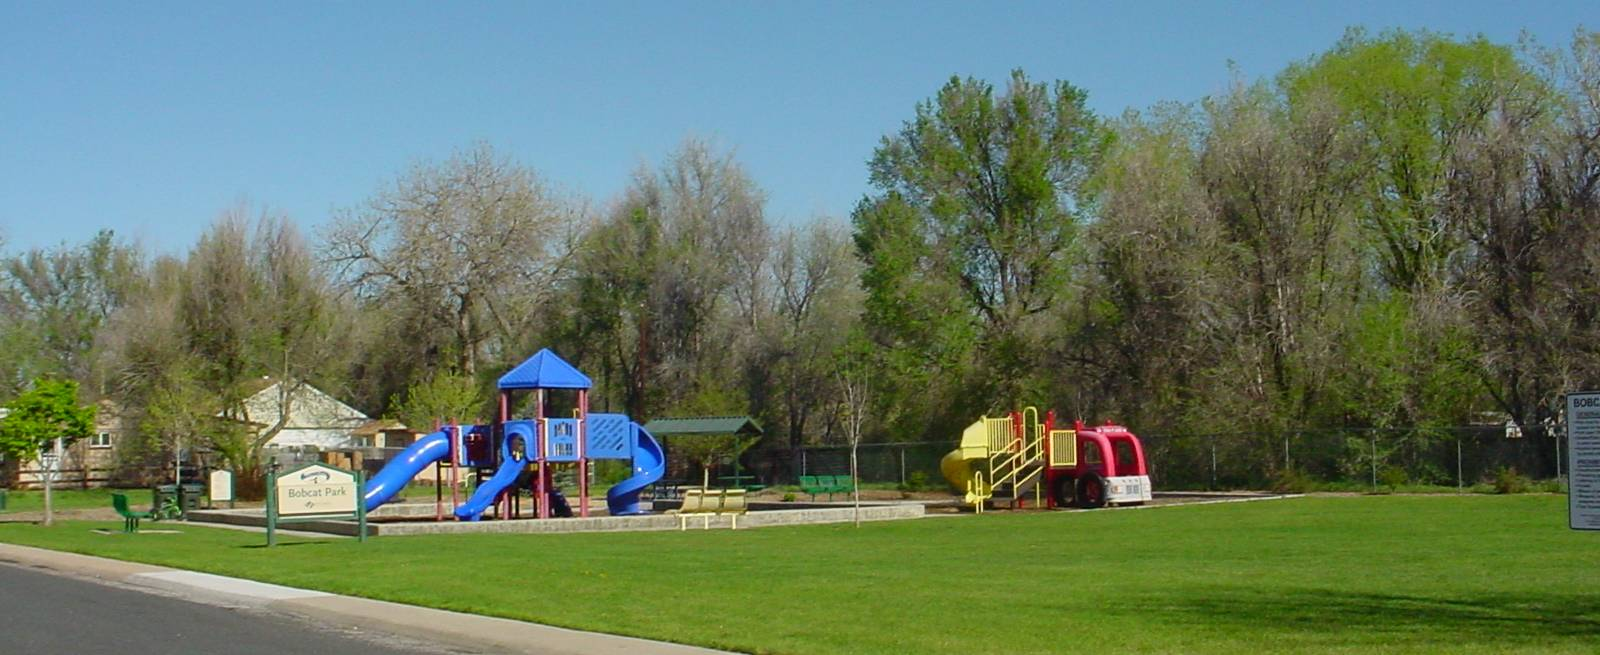 Picture of Bobcat Park